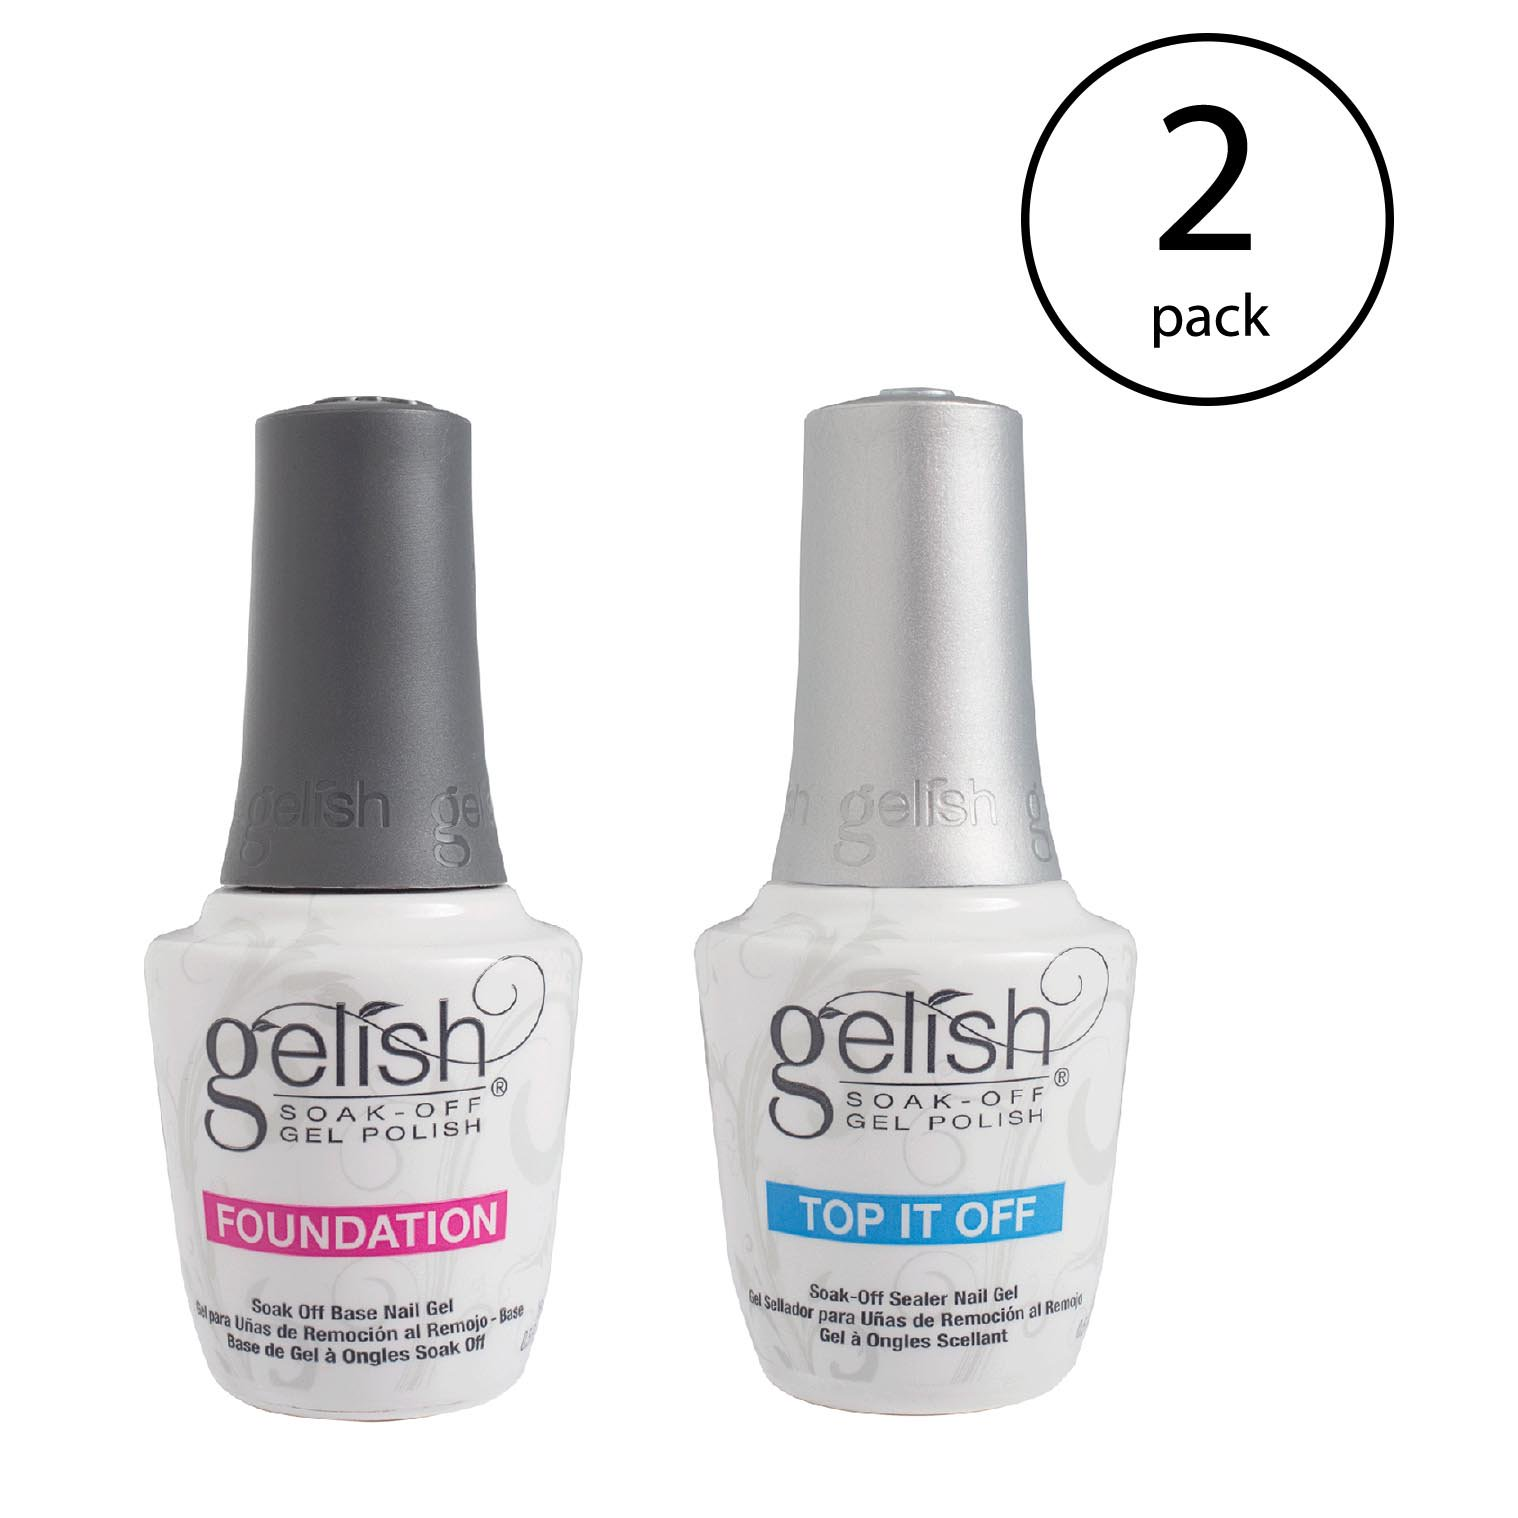 Gelish Dynamic Duo Foundation Base & Top It Off Sealer Gel Nail Polish (2 Pack)